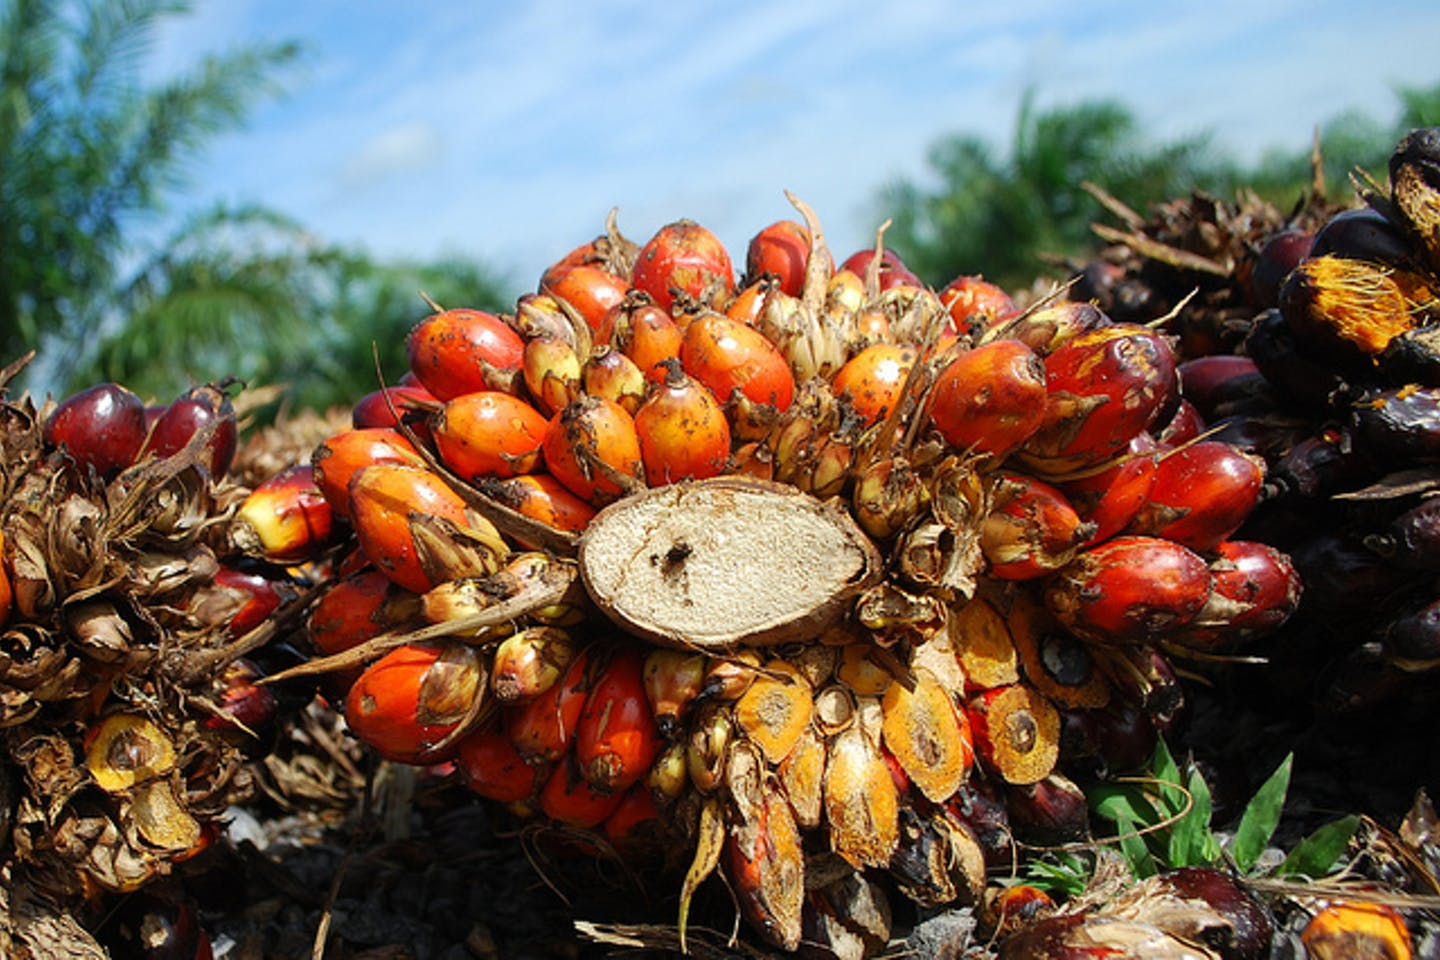 oil palm fruits from jambi indonesia